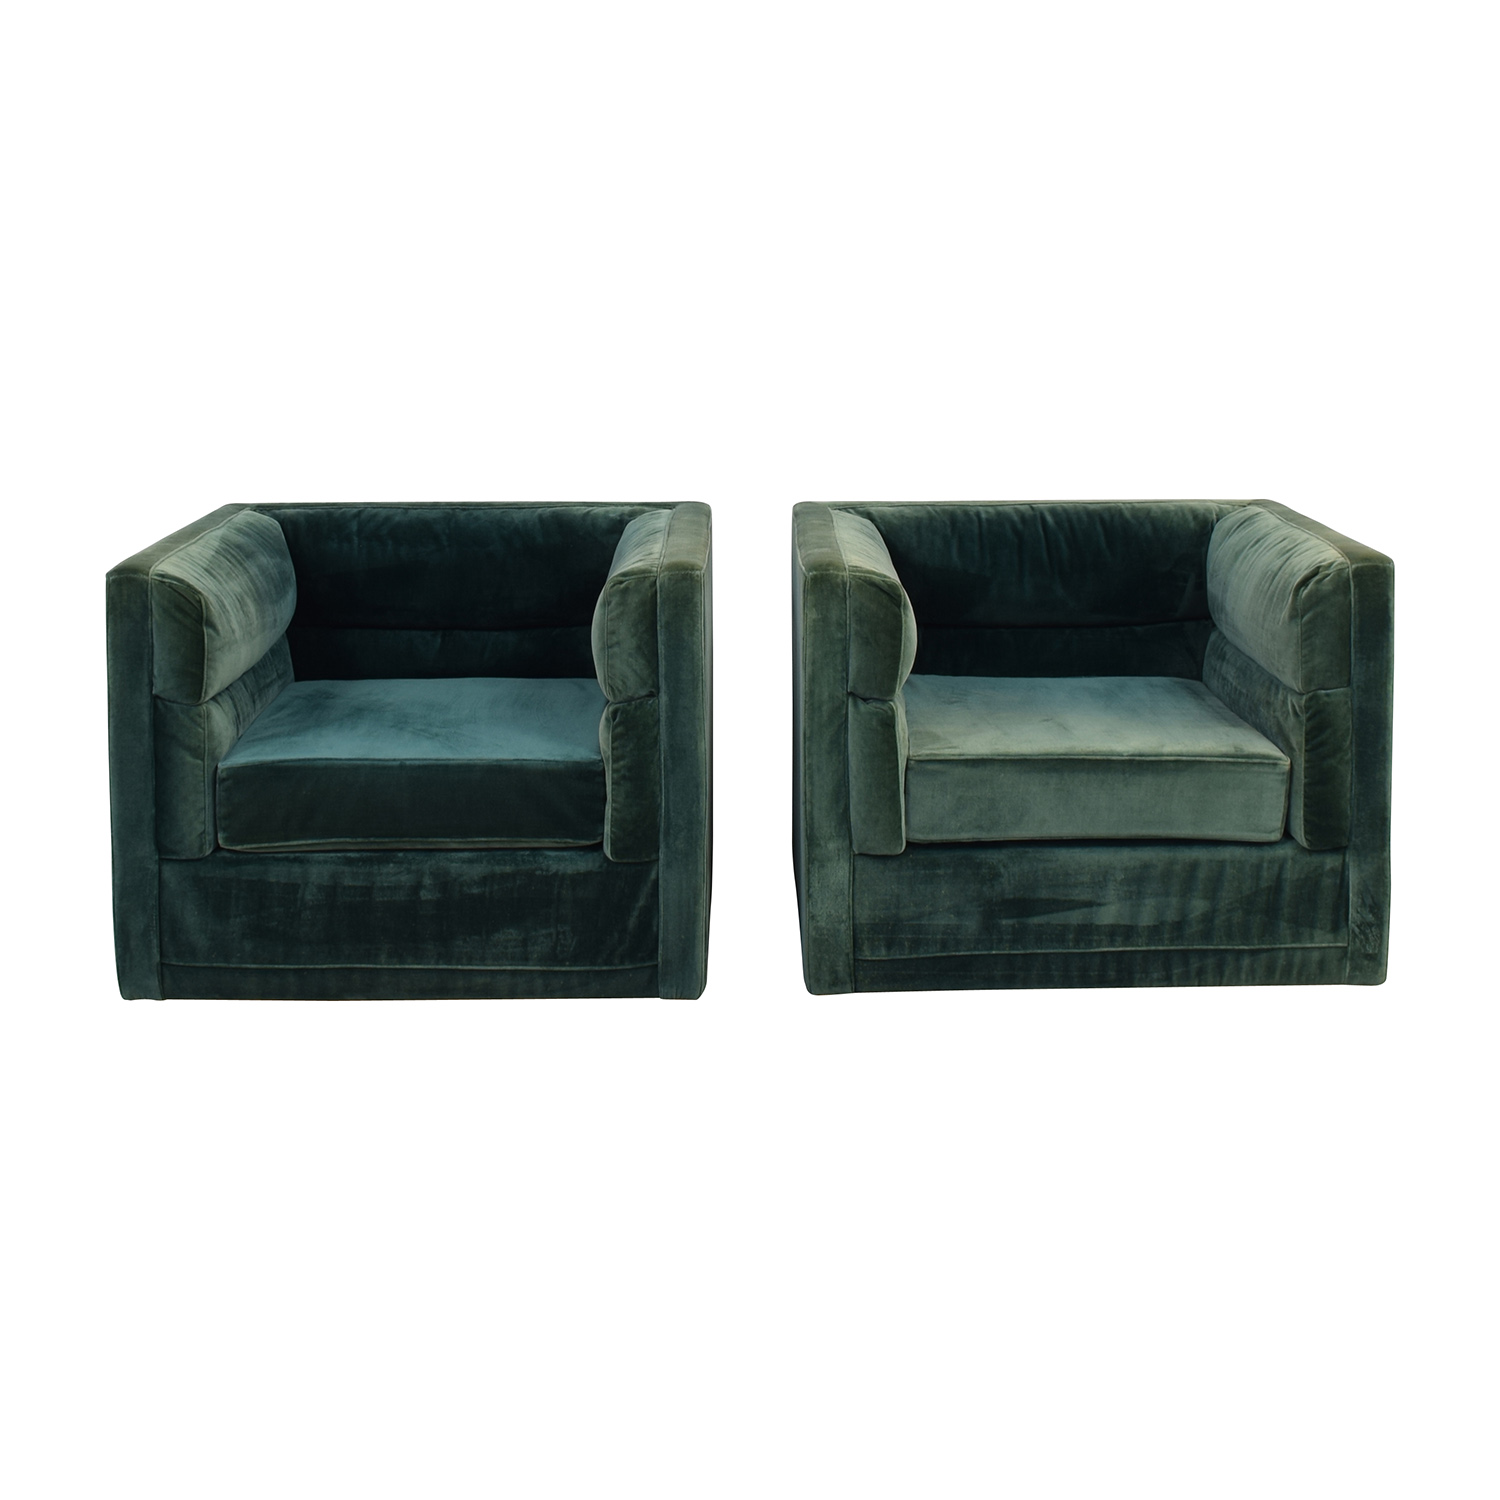 ModShop Green Velvet Chairs / Accent Chairs